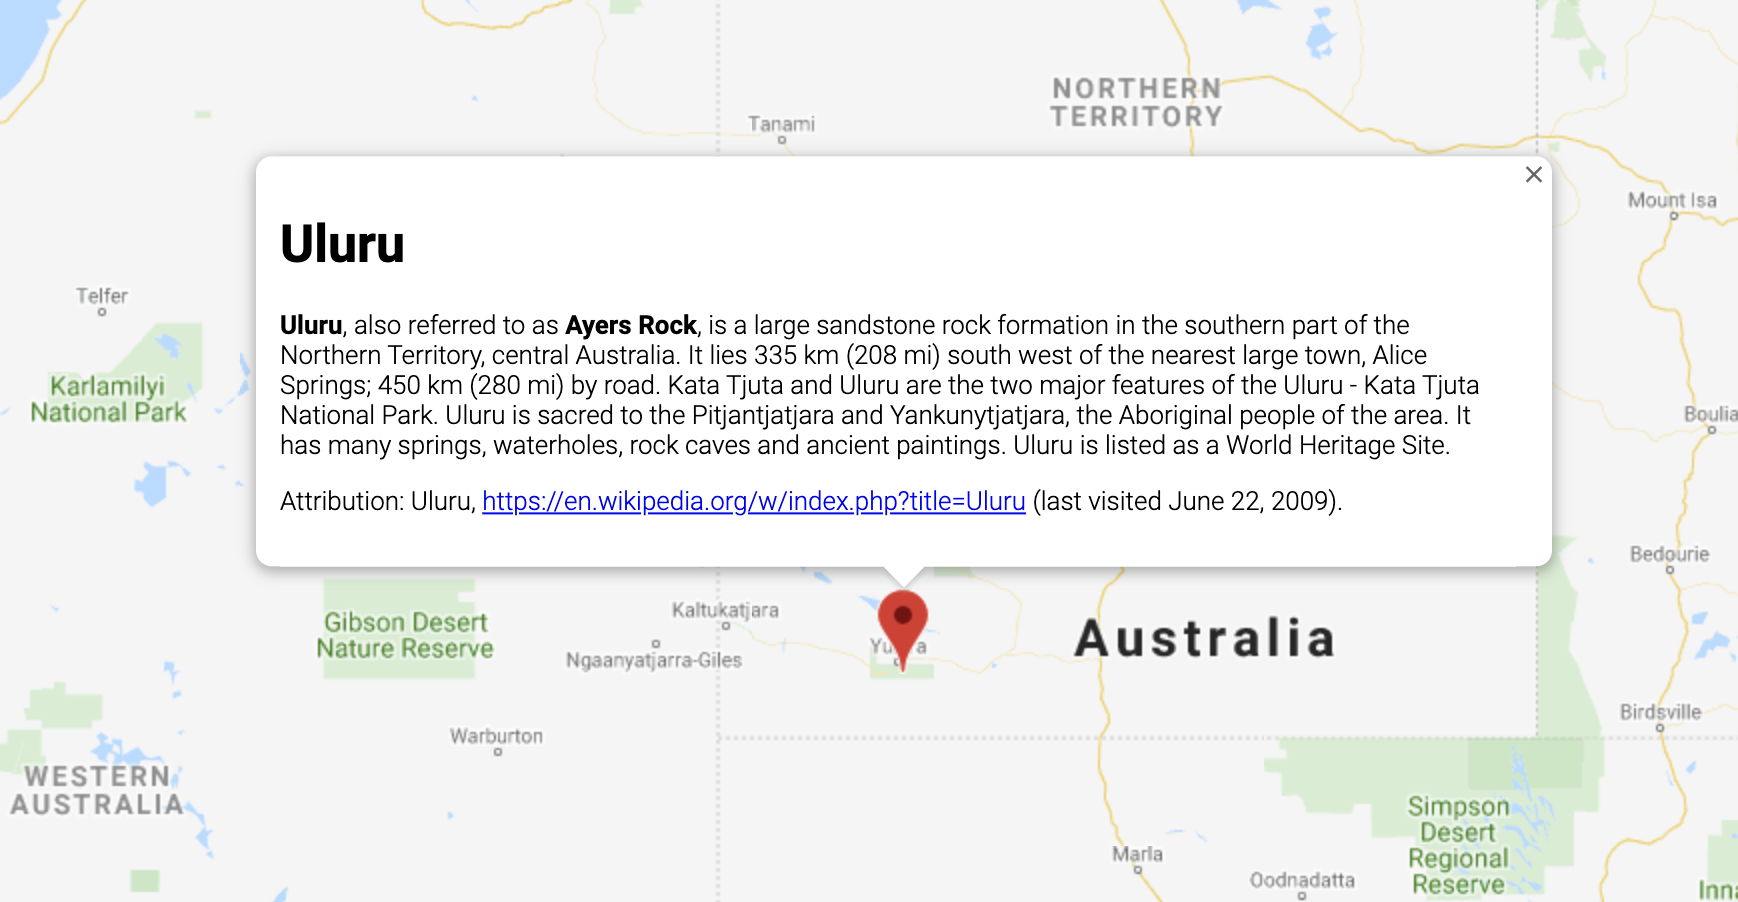 An InfoWindow displaying information about a location in Australia.